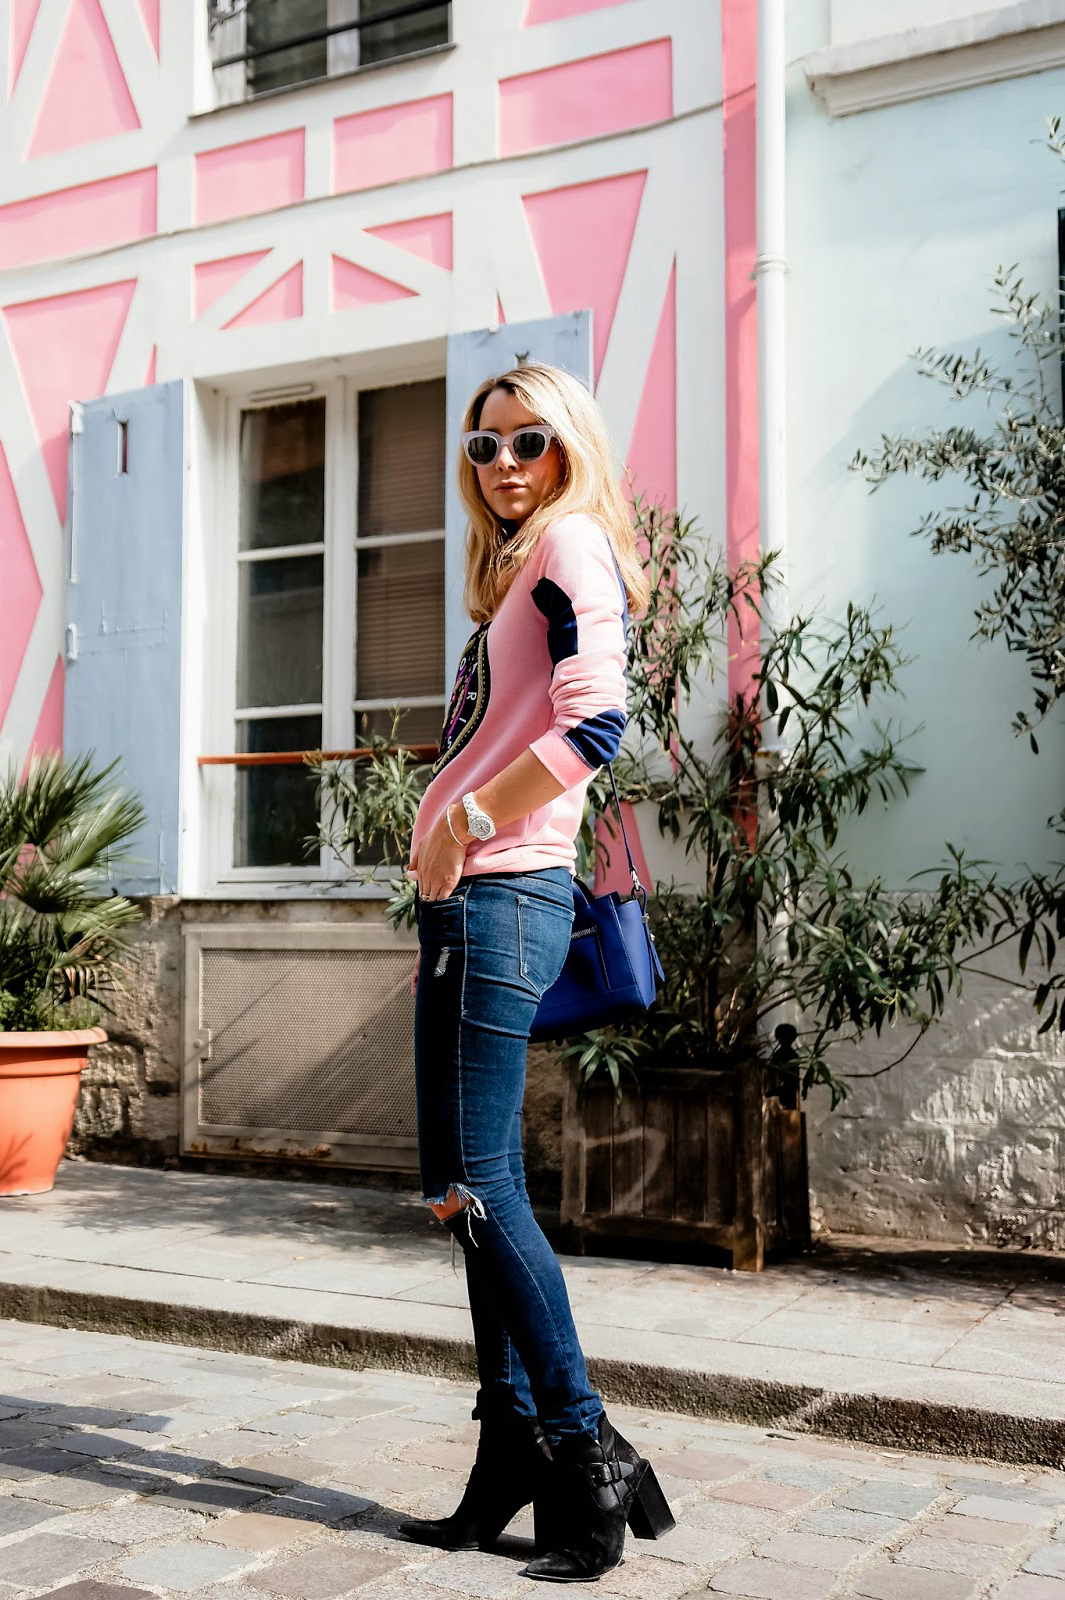 Street Style: Caroline Louis is wearing a candy pink sweater and royal blue side bag from Kenzo with Frame Denim jeans and black Senso ankle boots